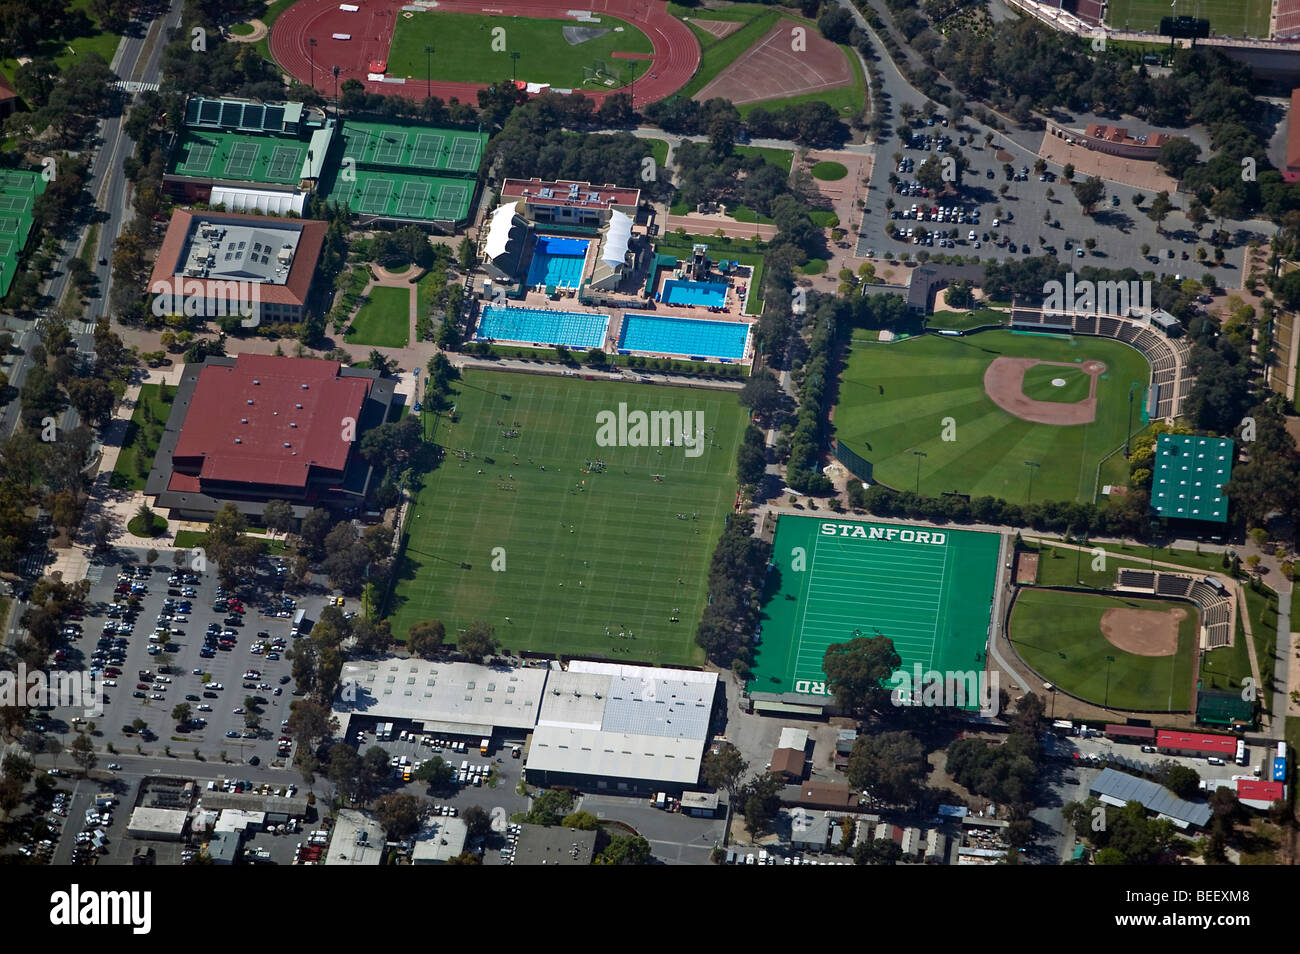 aerial view above Stanford University athletic facilities - Stock Image